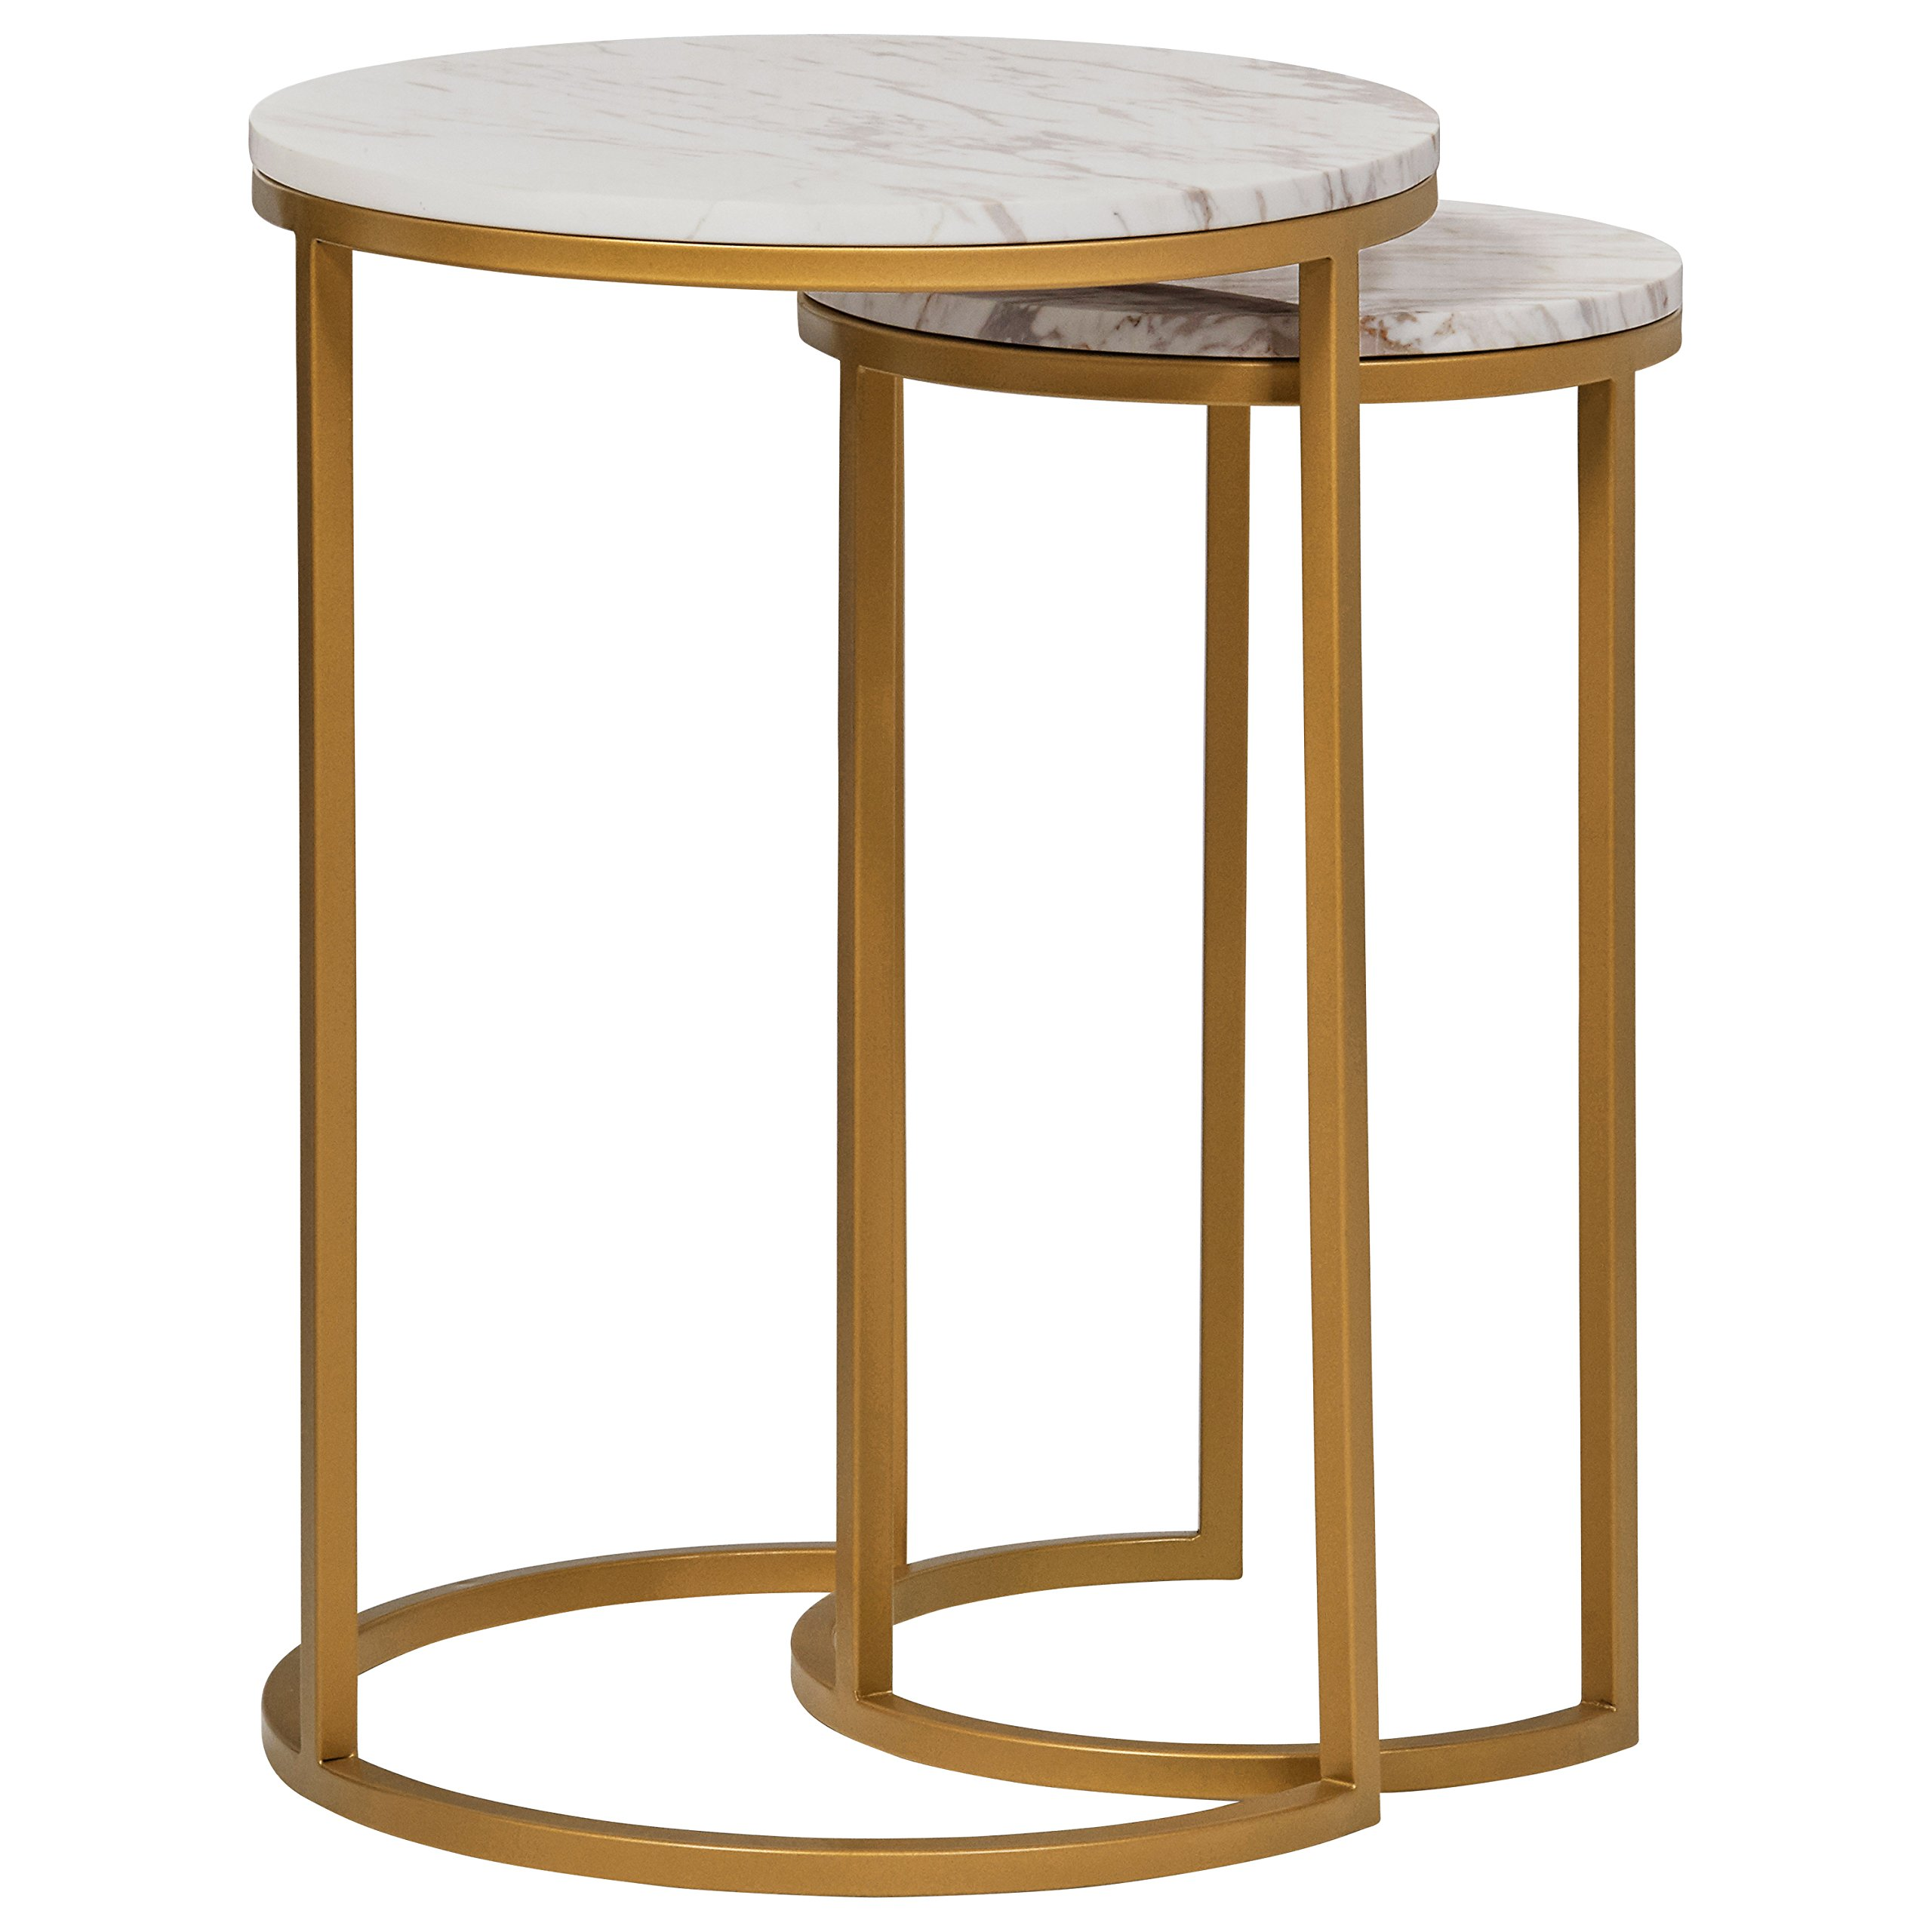 Rivet Circular Modern Marble and Gold Nesting Side Table, Set of 2, Marble/Gold